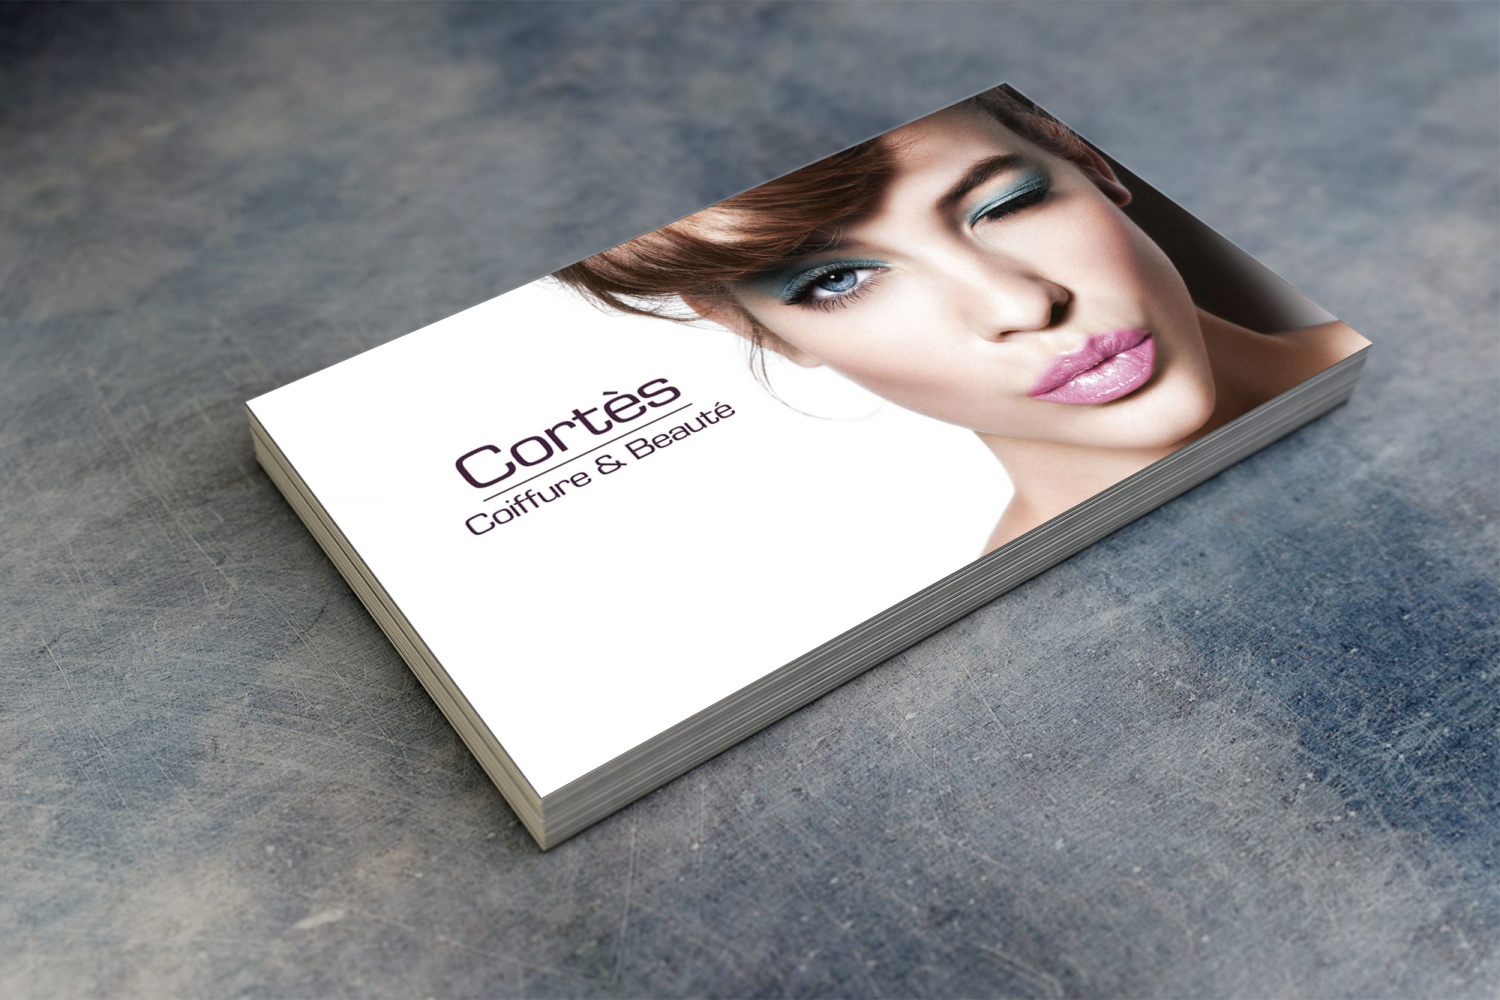 Salon De Coiffure Antibes Cortes Coiffure Clients Another One